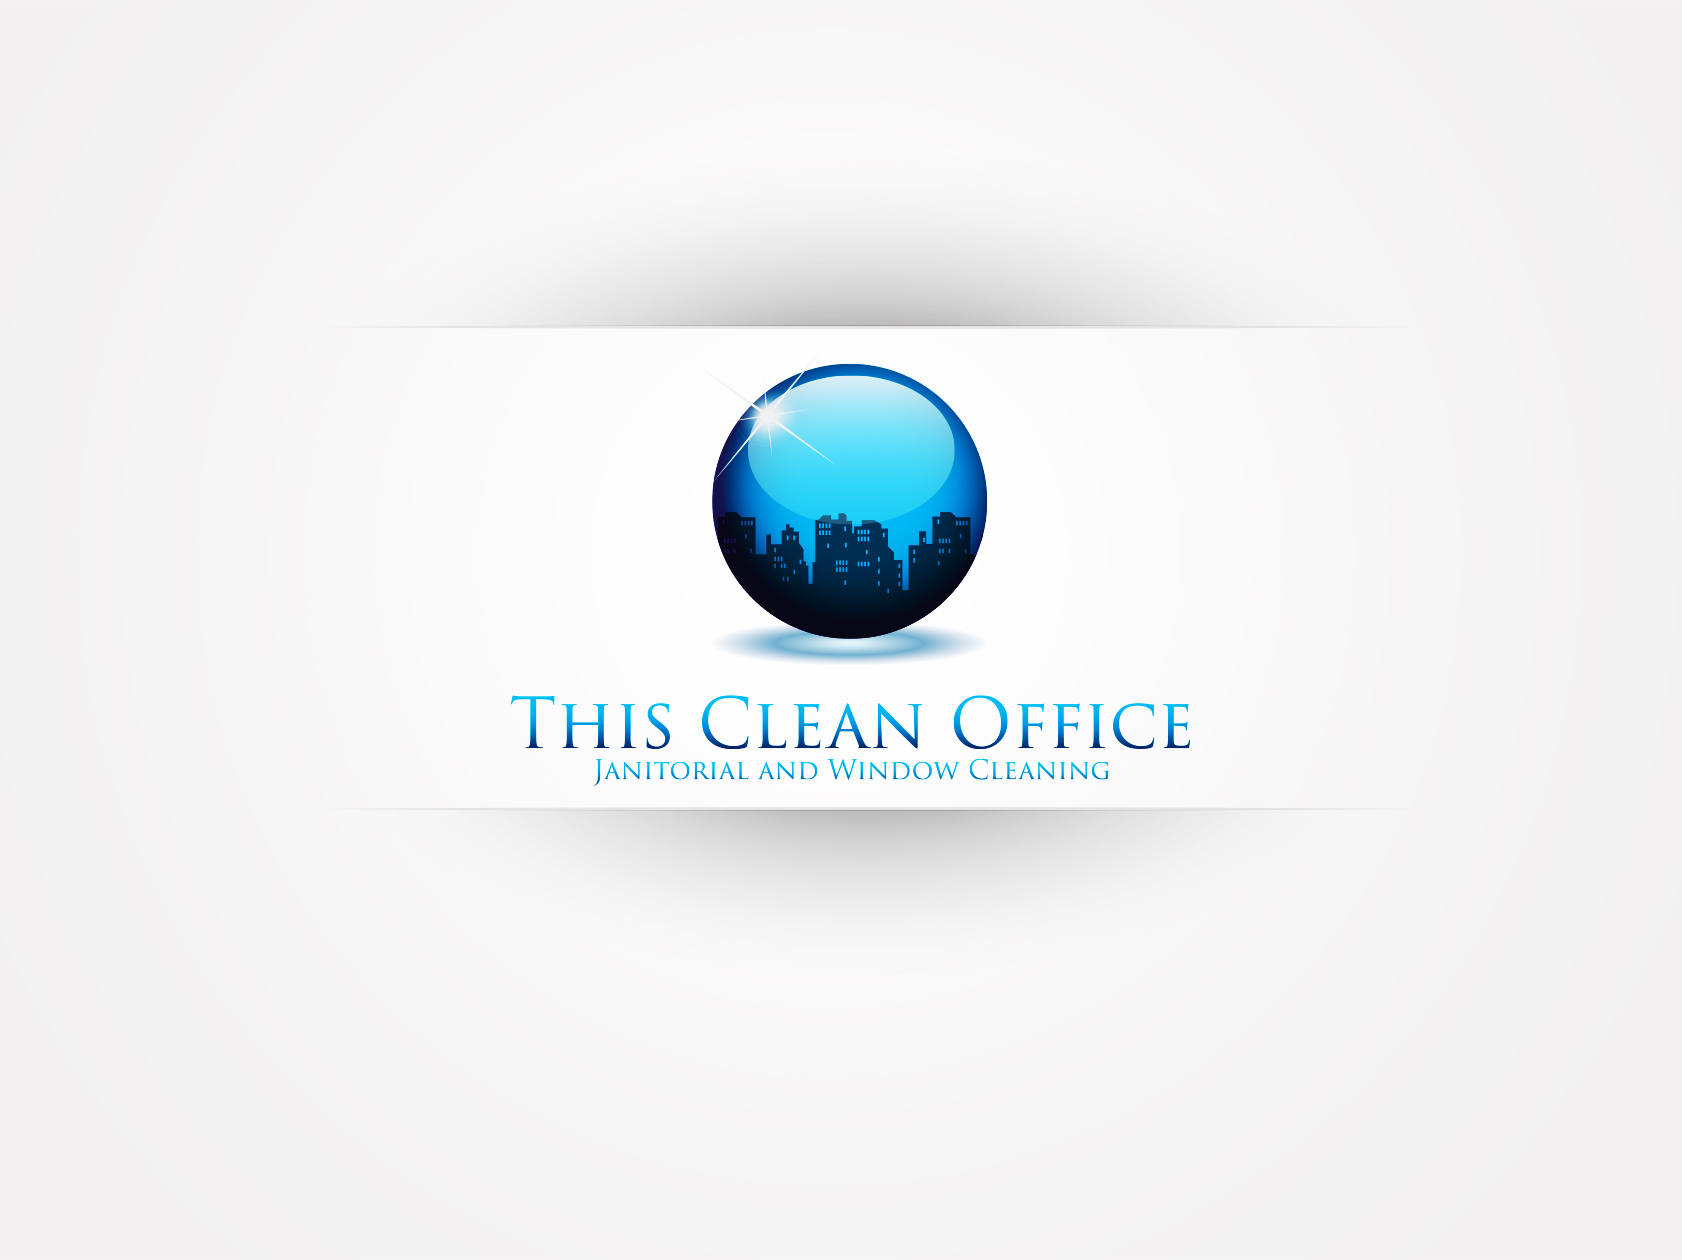 Logo Design by OmegaDesigns - Entry No. 57 in the Logo Design Contest Professional and Unforgettable Logo Design for This Clean Office.